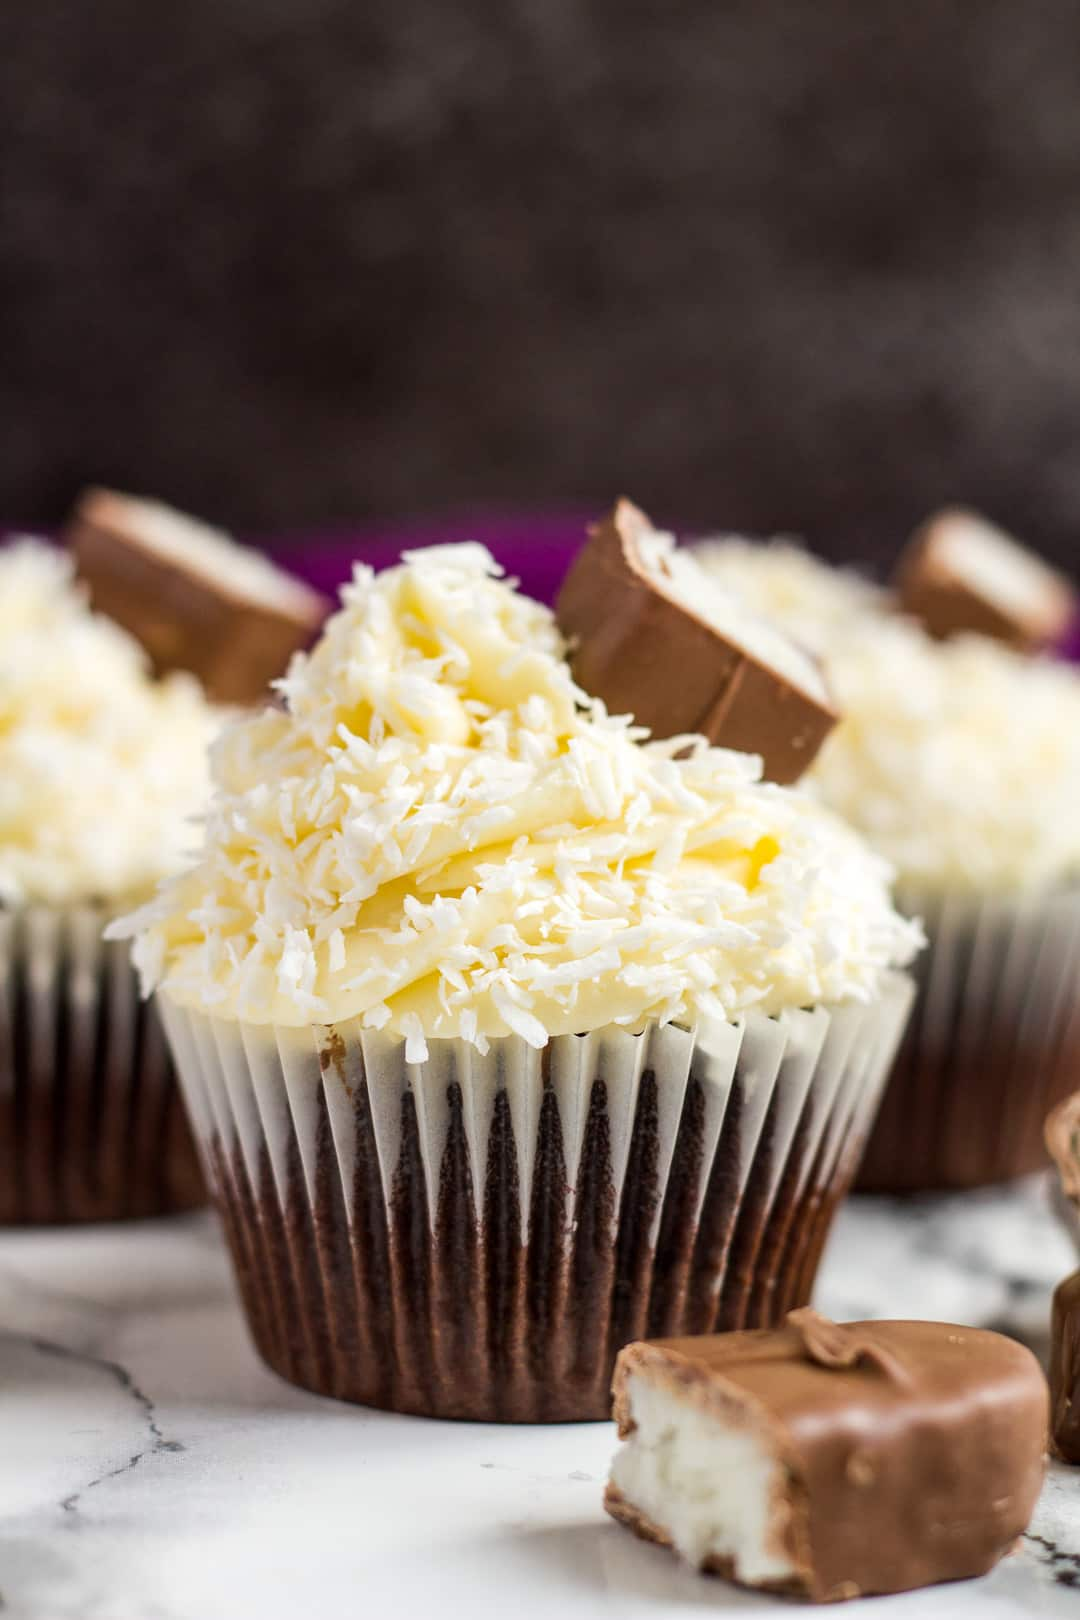 Frosted chocolate coconut cupcakes topped with pieces of Bounty.